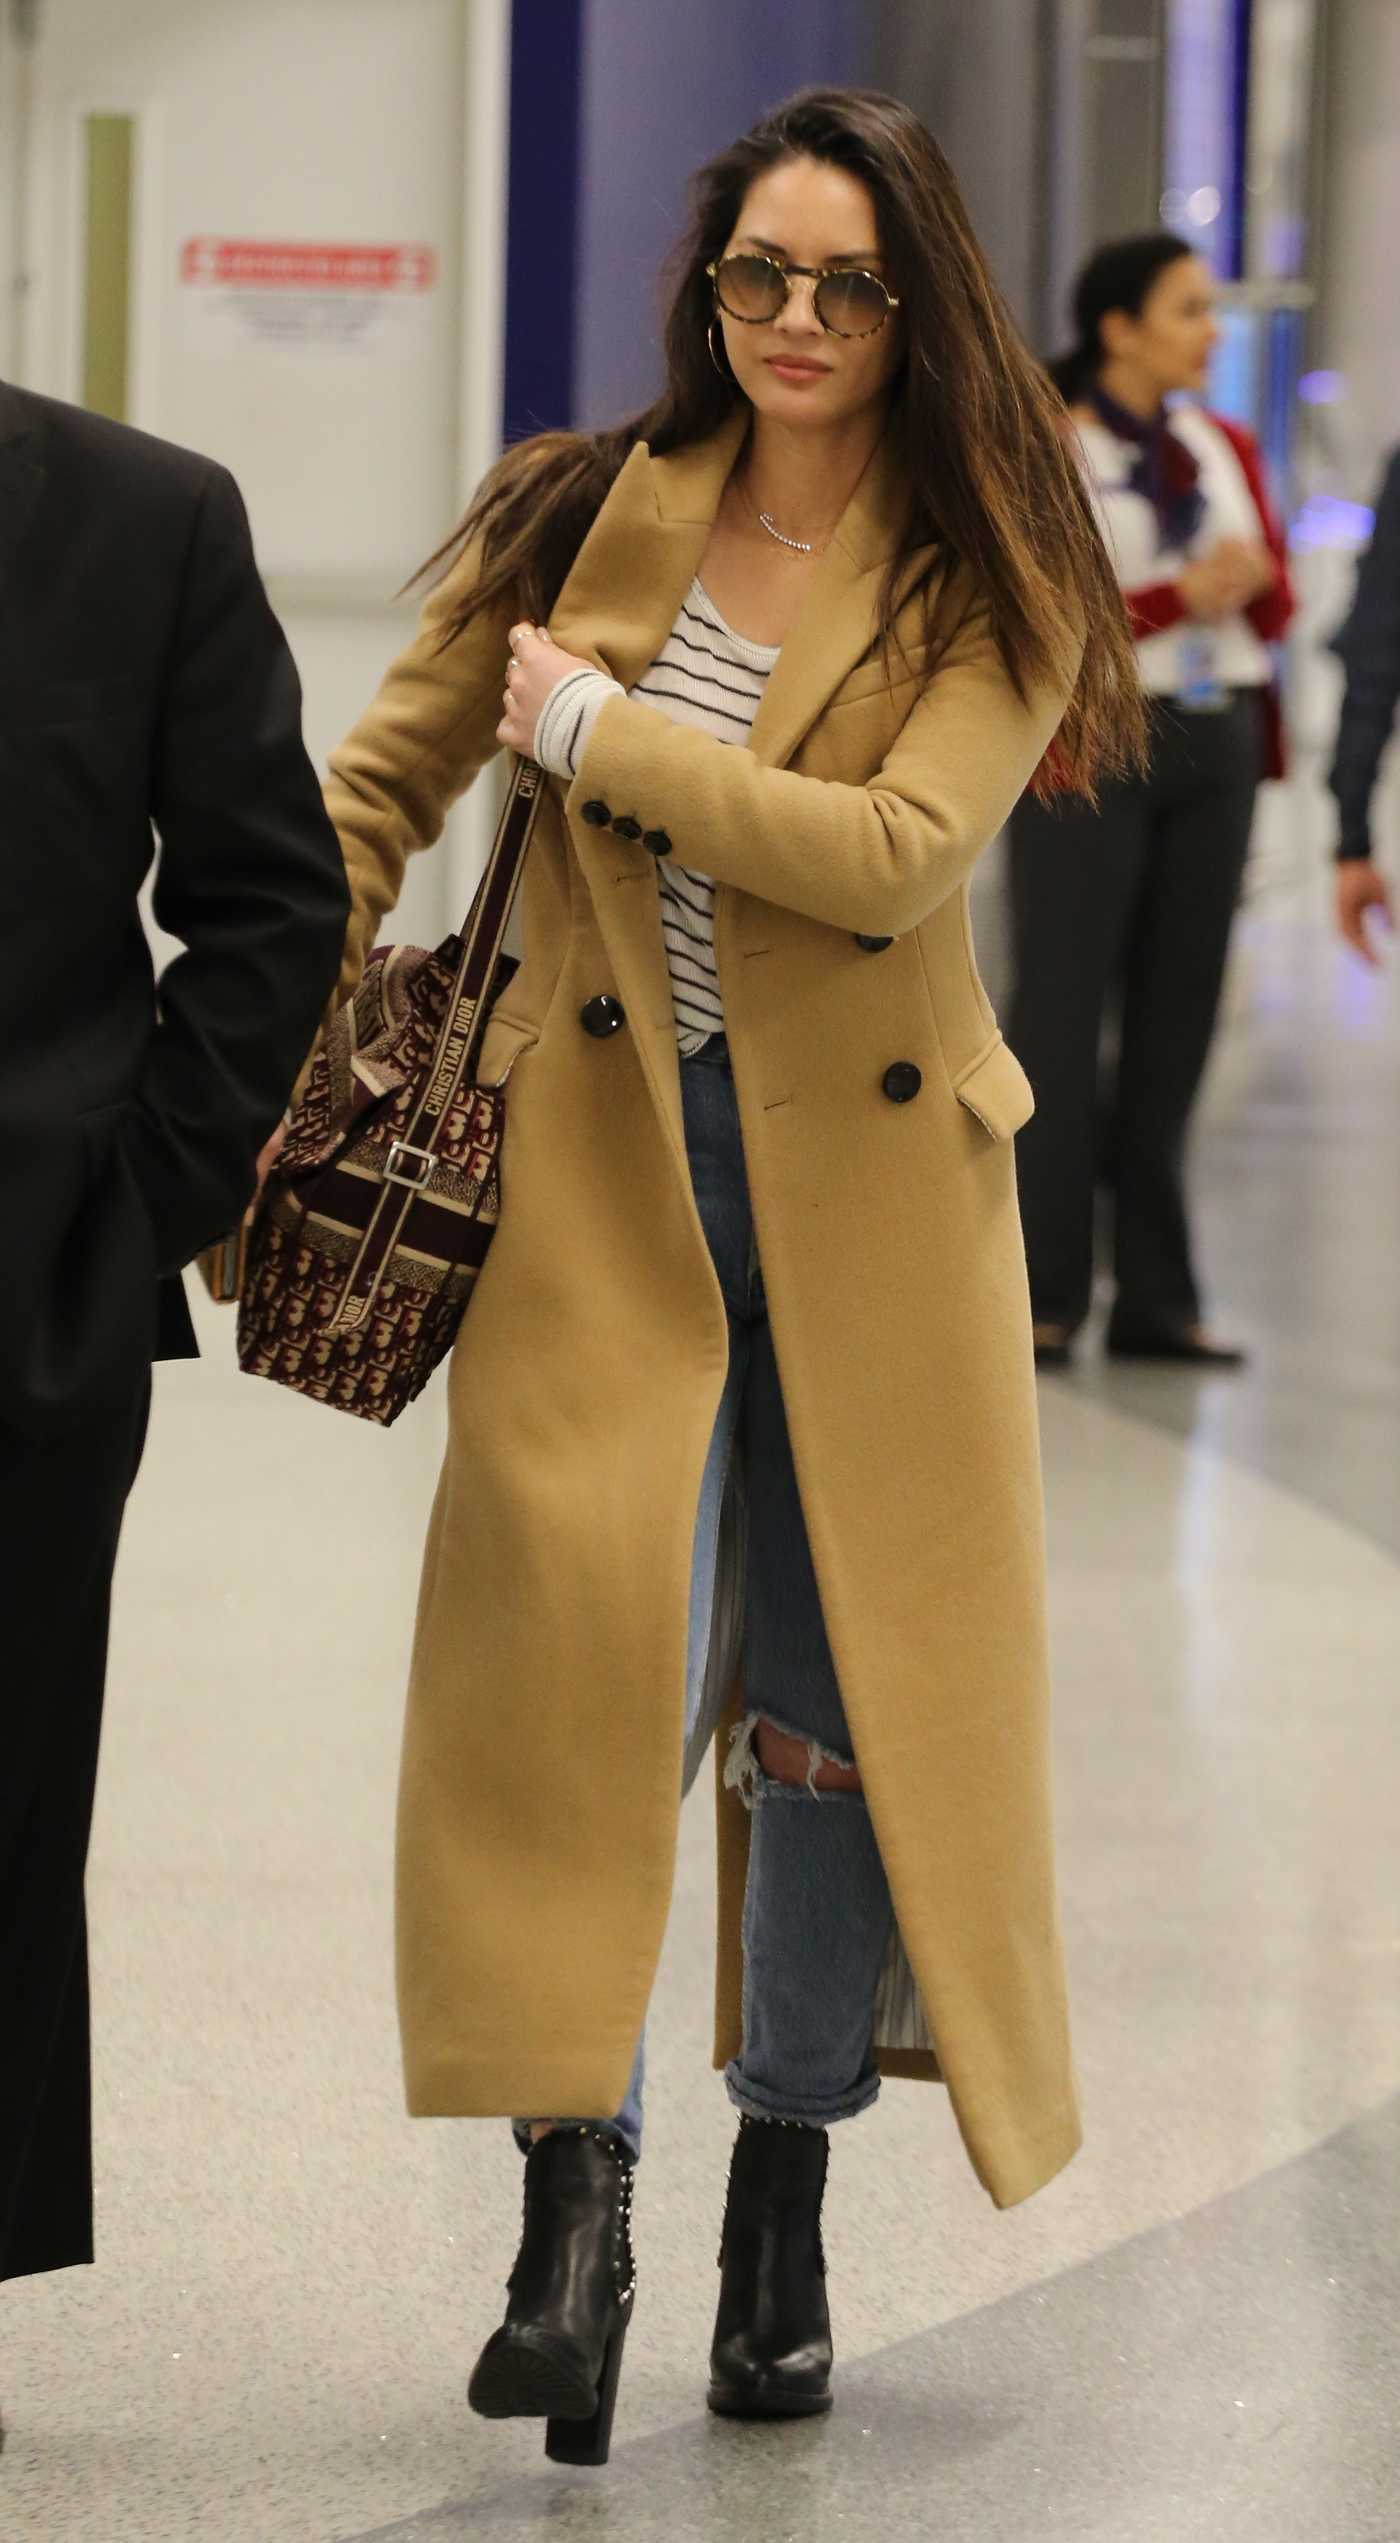 Olivia Munn in a Beige Coat Leaves LAX Airport in LA 02/26/2019